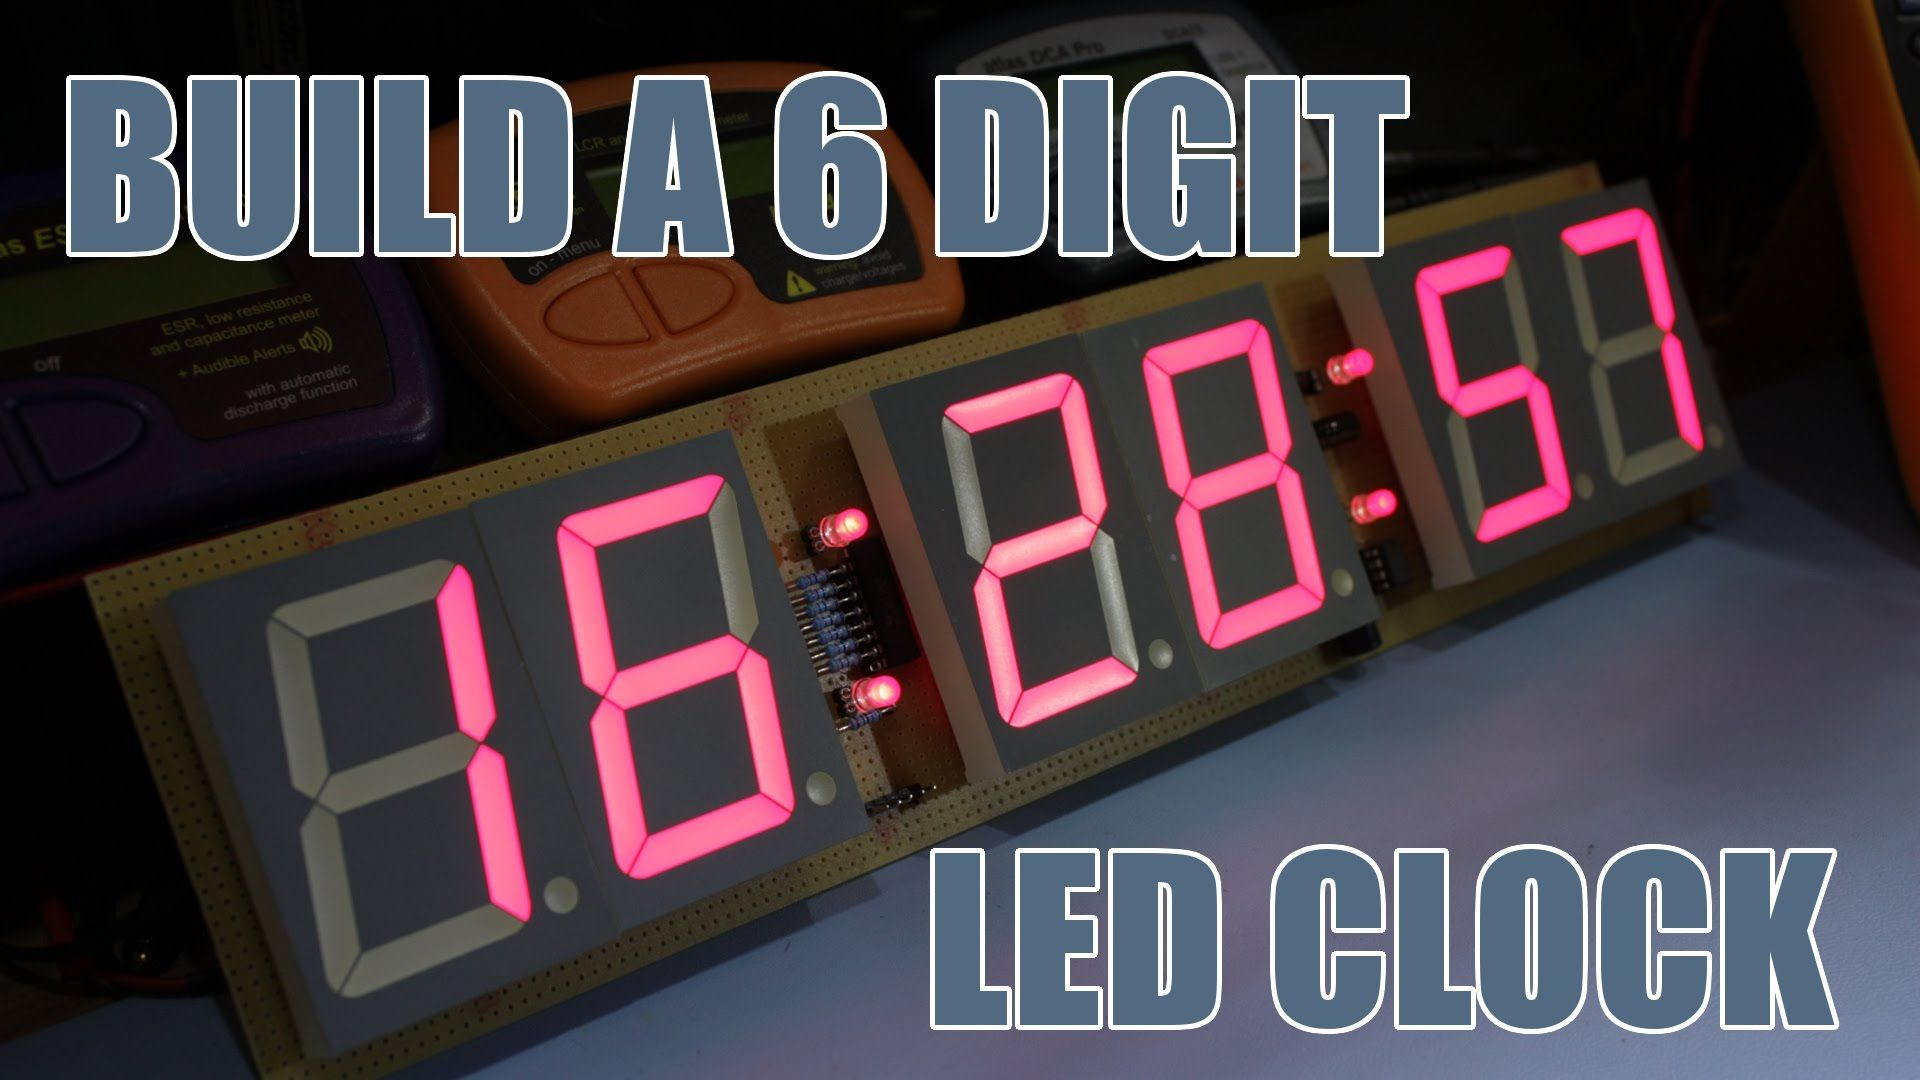 Sdgee 021 Build A 6 Digit 23 Led Clock Block Diagram In 2018 Using Pic Microcontroller